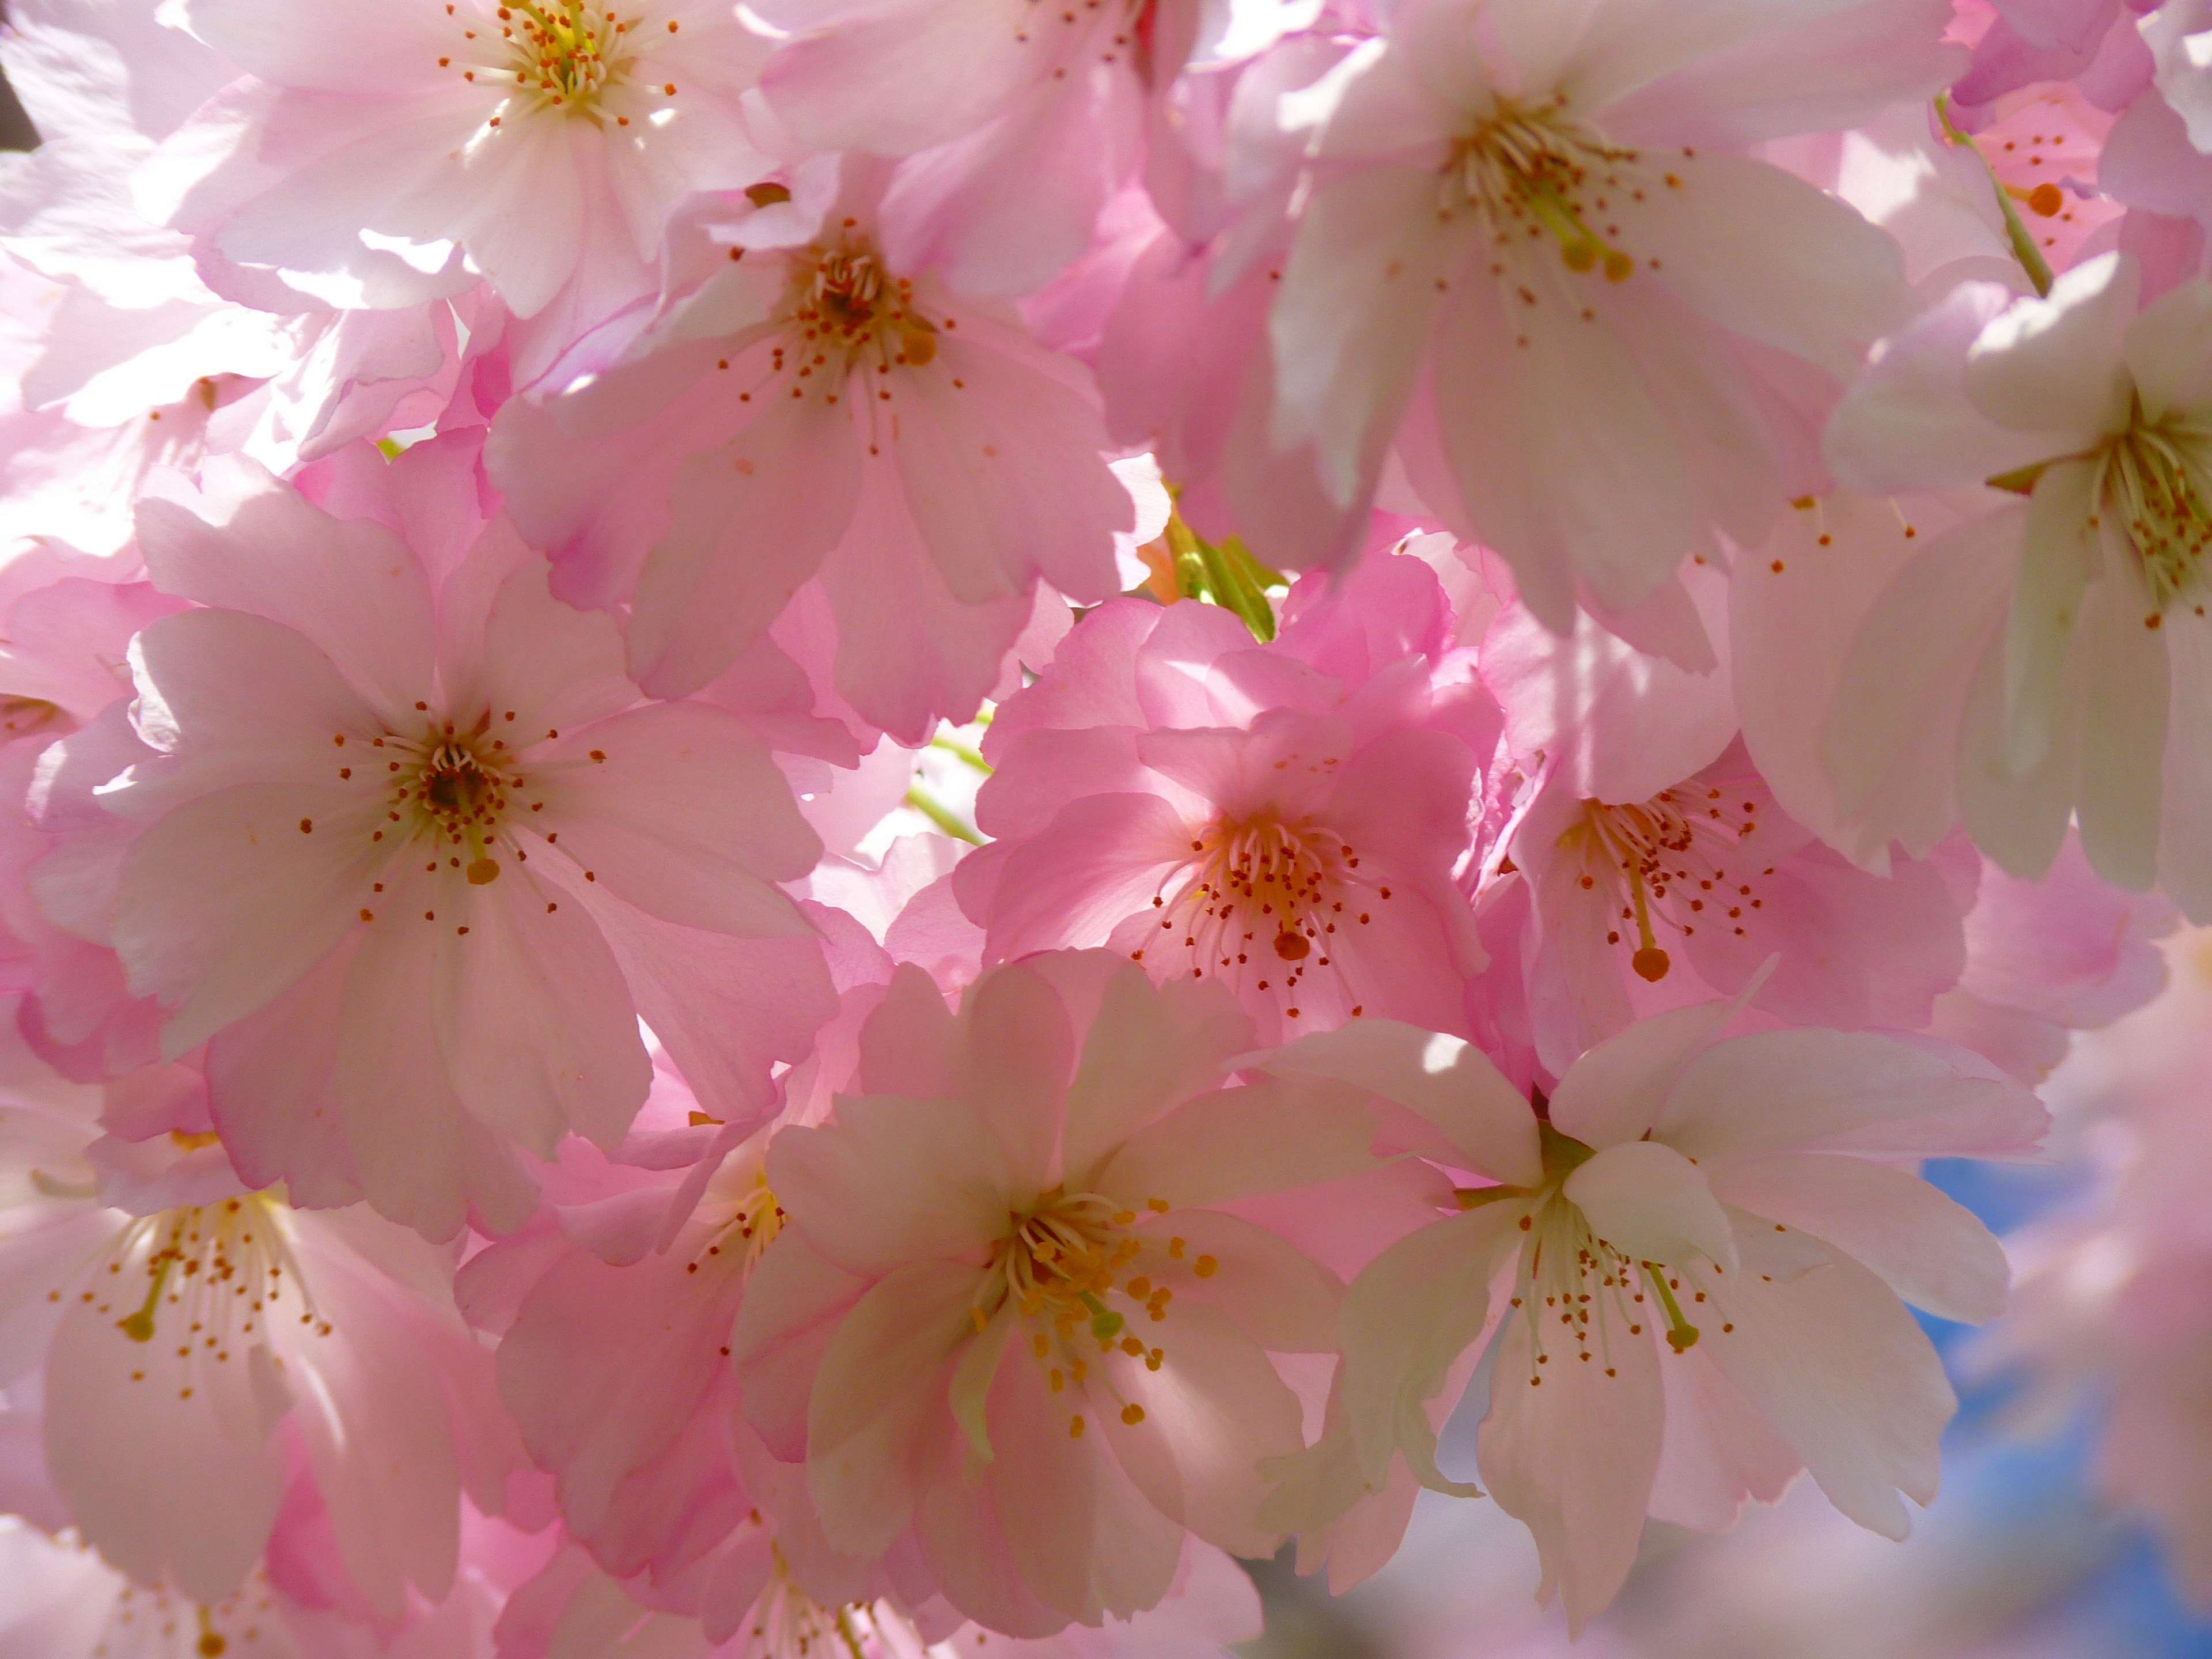 Bloom Blossom Cherry Blossom Flora Flowers Spring Flower Meanings Japanese Cherry Tree Pink Flowers